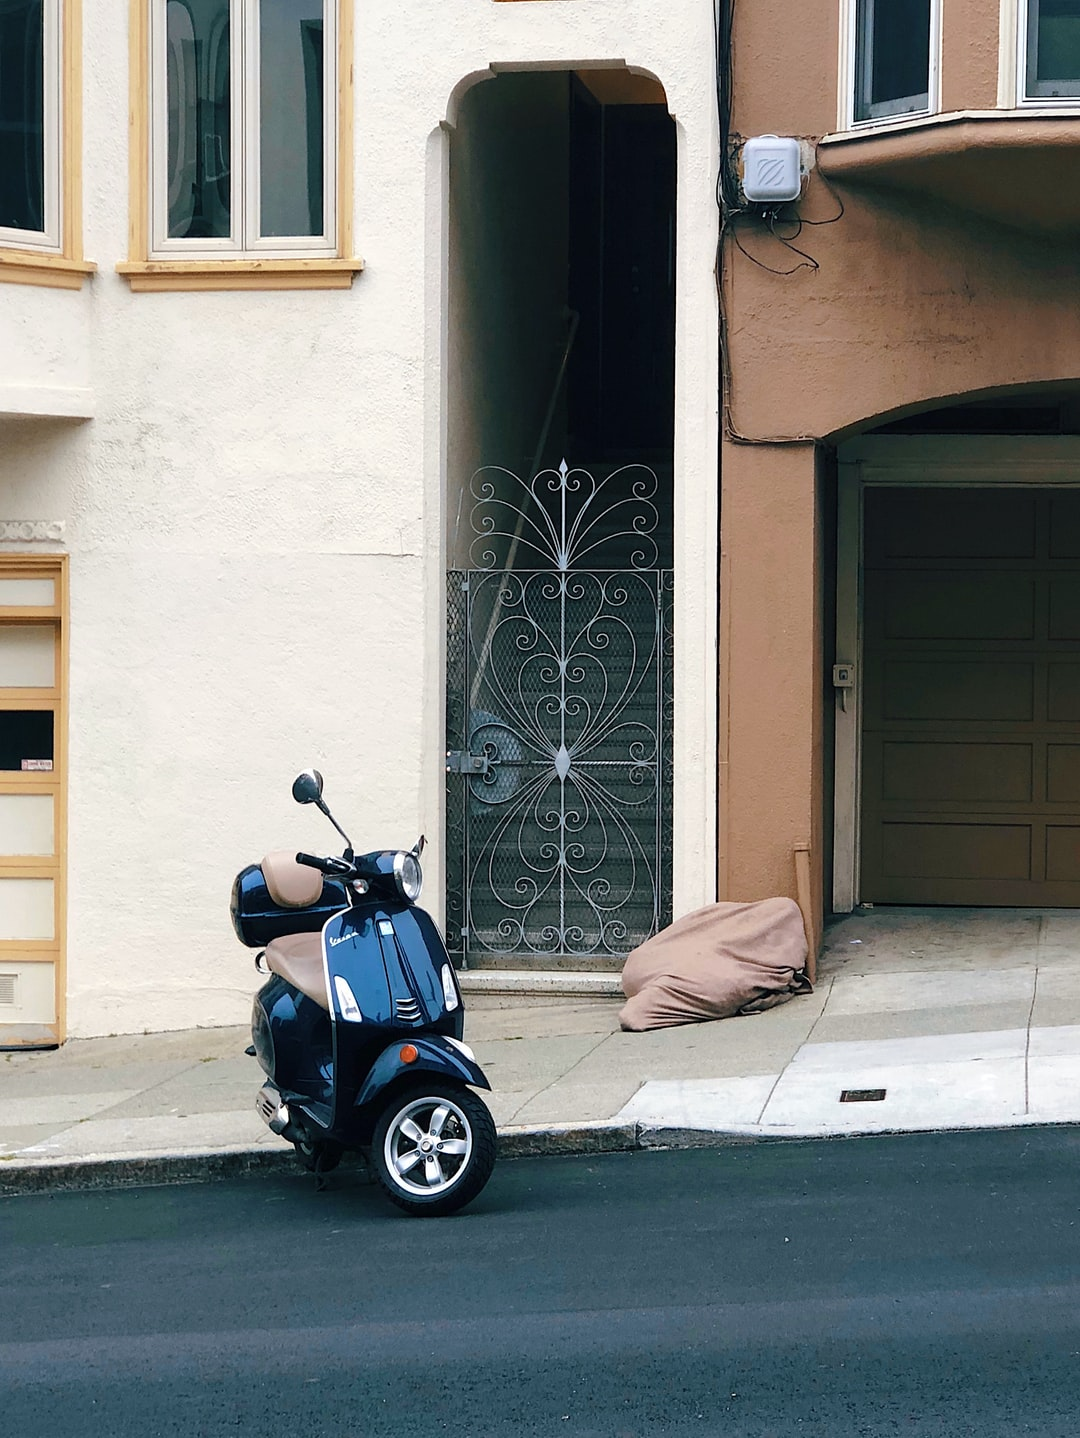 I was in SF for a trip, and walking back from a coffee shop when I saw something that looked like a trash bag next to a scooter. I looked more closely and realized this was actually a person sleeping on the street in a sheet. I was reminded of how often the poor and vulnerable in our cities are invisible, and how I saw the Vespa before i saw humanity. May we all grow in the ability to see, and a deep compassion for others.